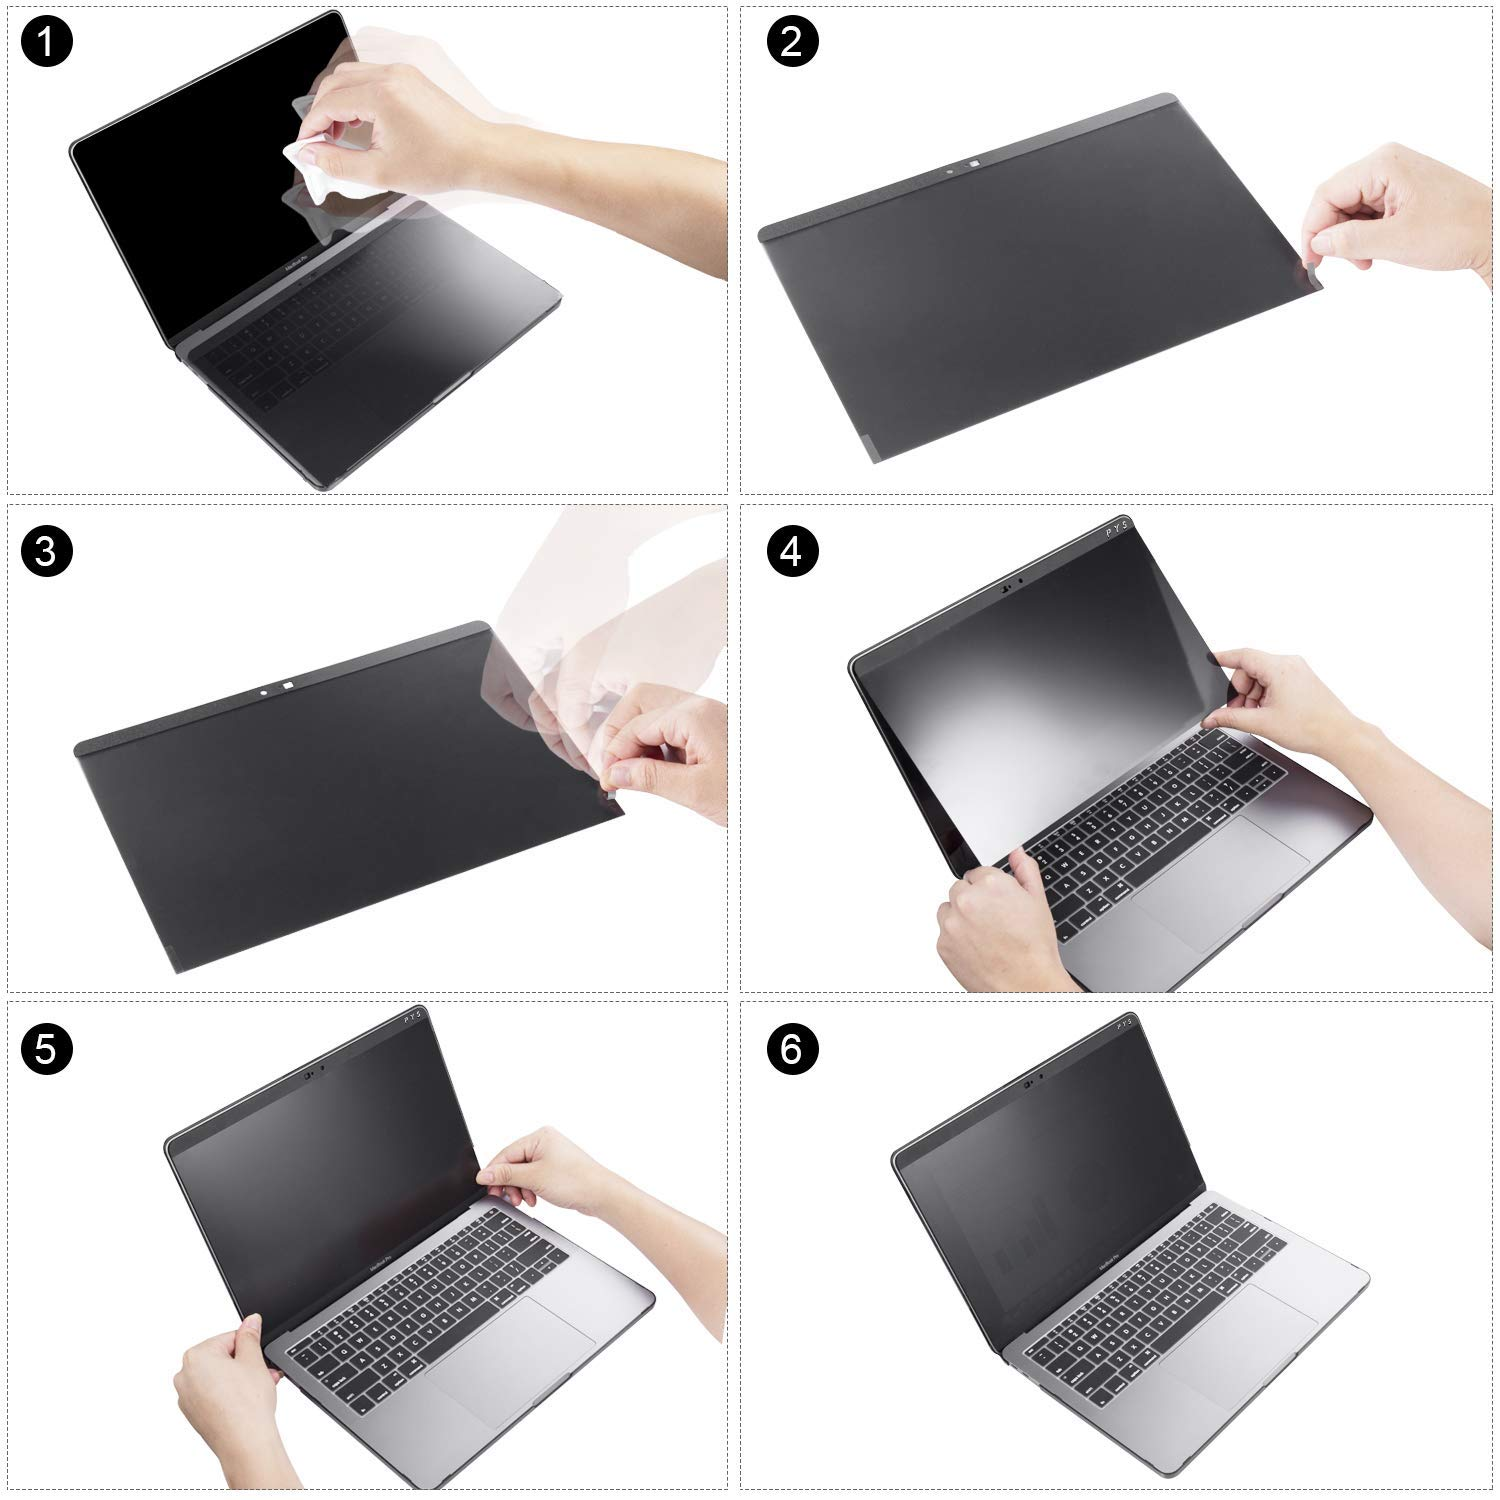 MacBook pro Privacy Screen Protector 13 and 15 inch,Blocks Prying Eyes,Magnetic and Ultra Slim.Easy ON/Off … (MacBook Pro 13 inch (2016-2018)) by JMLY (Image #7)